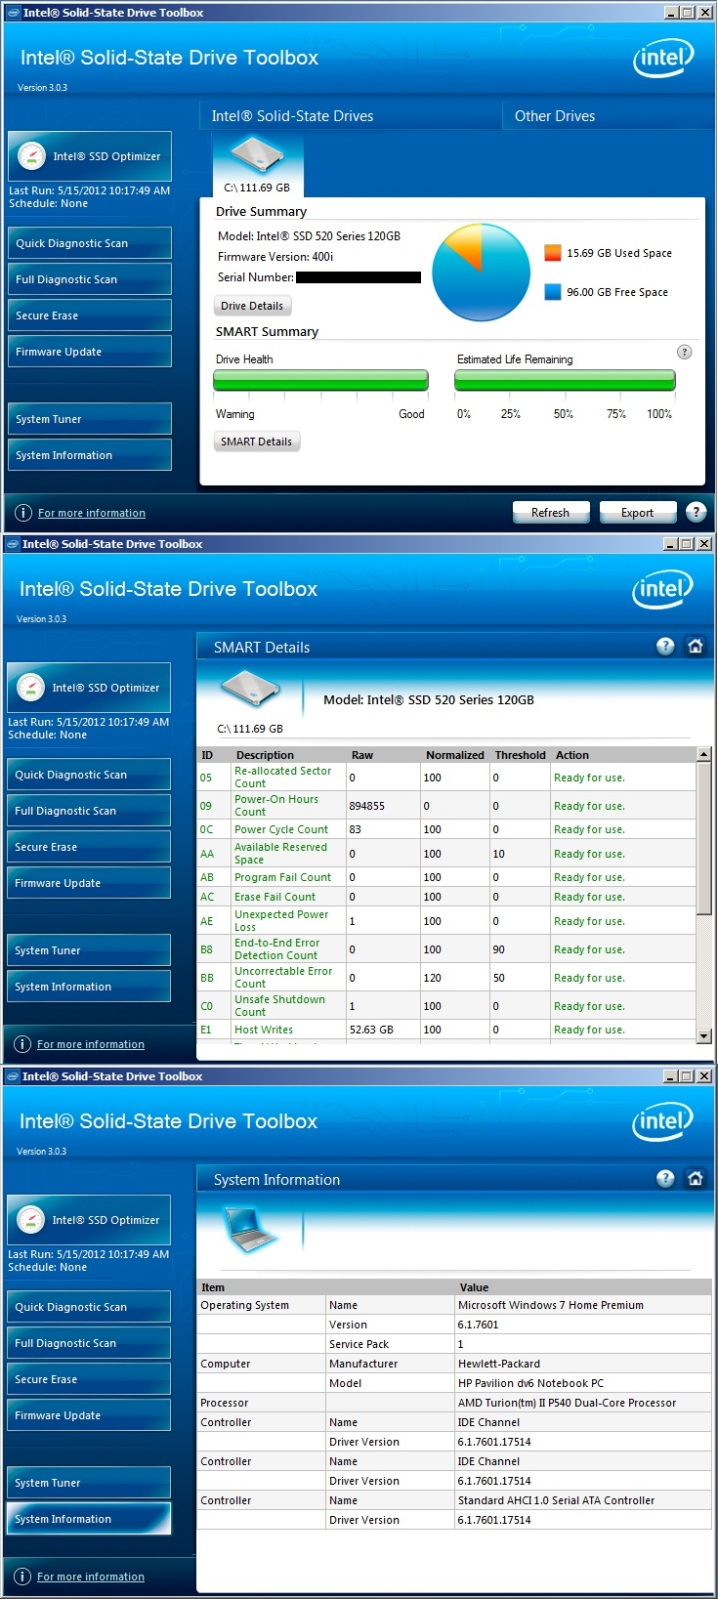 Notebook Intel Tool Box